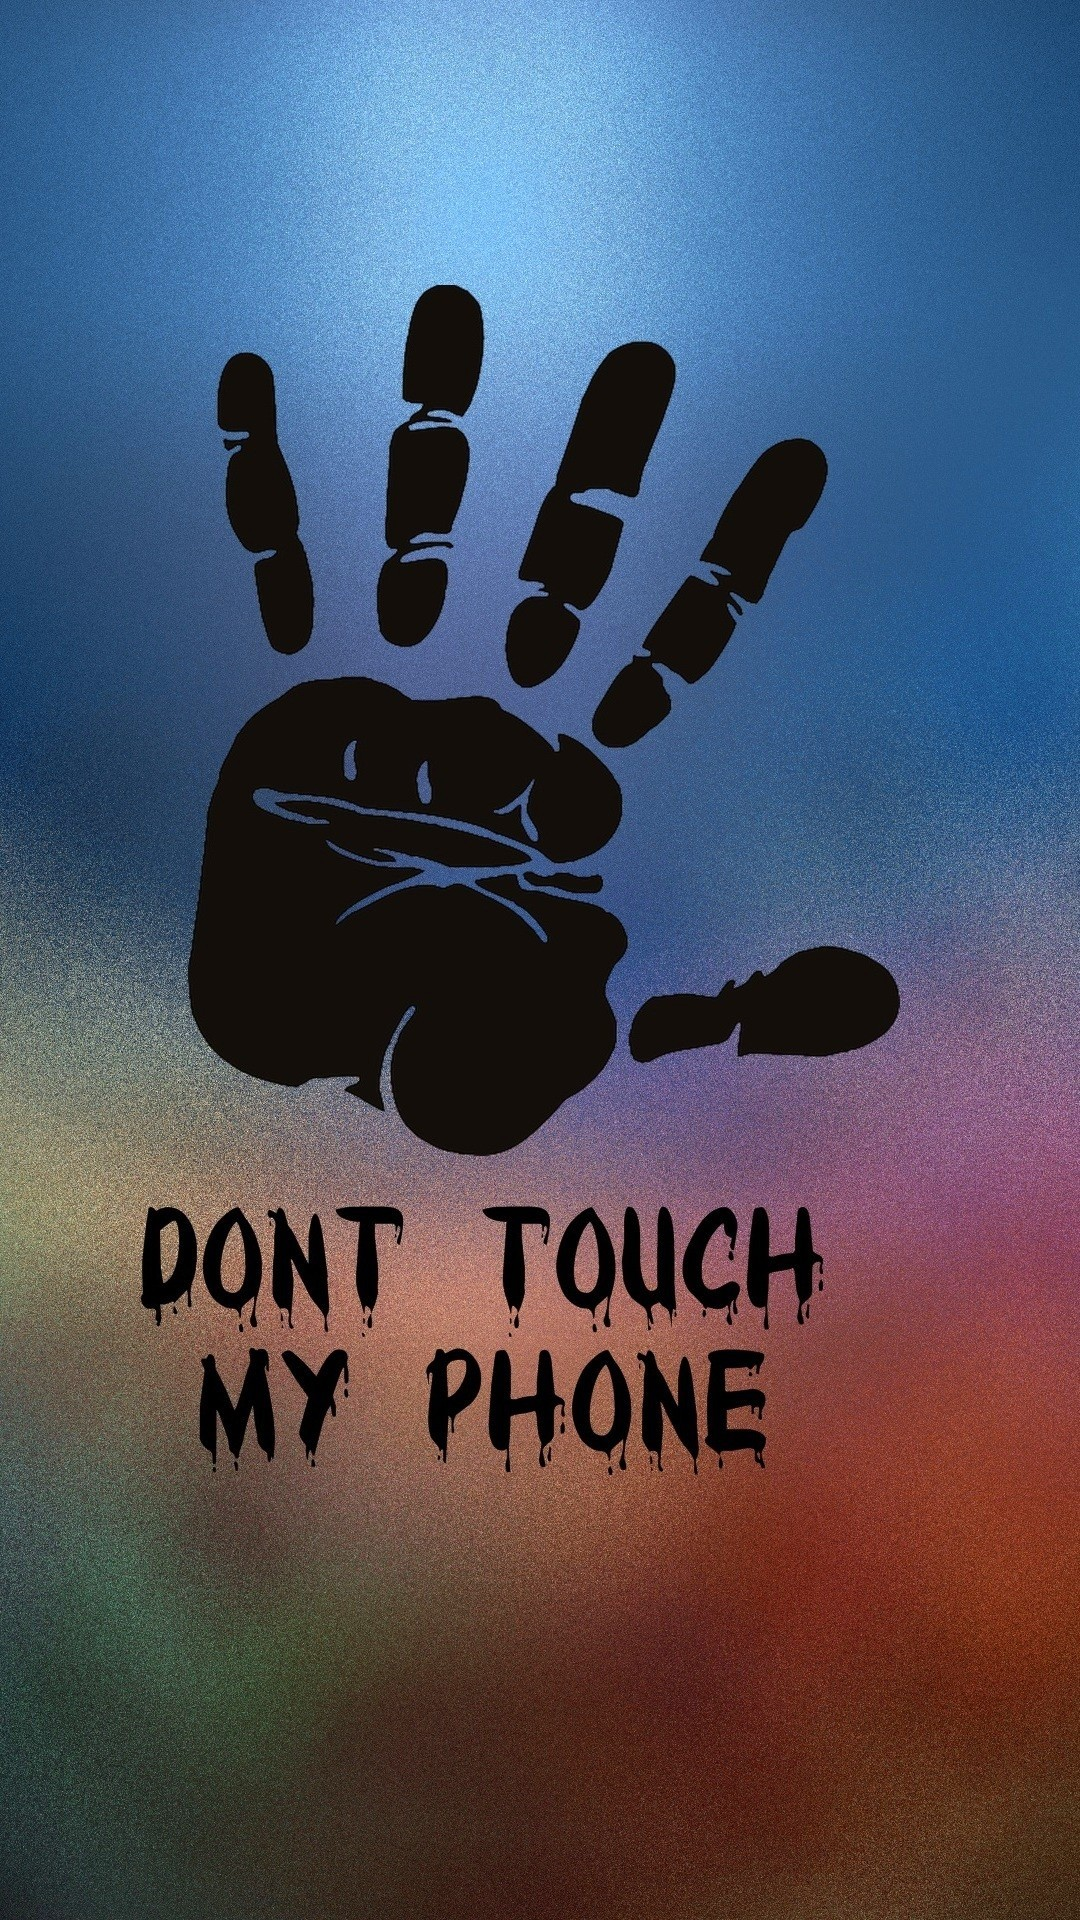 1080x1920 Tap to see more Don't Touch My Phone Android wallpapers, backgrounds,  fondos!